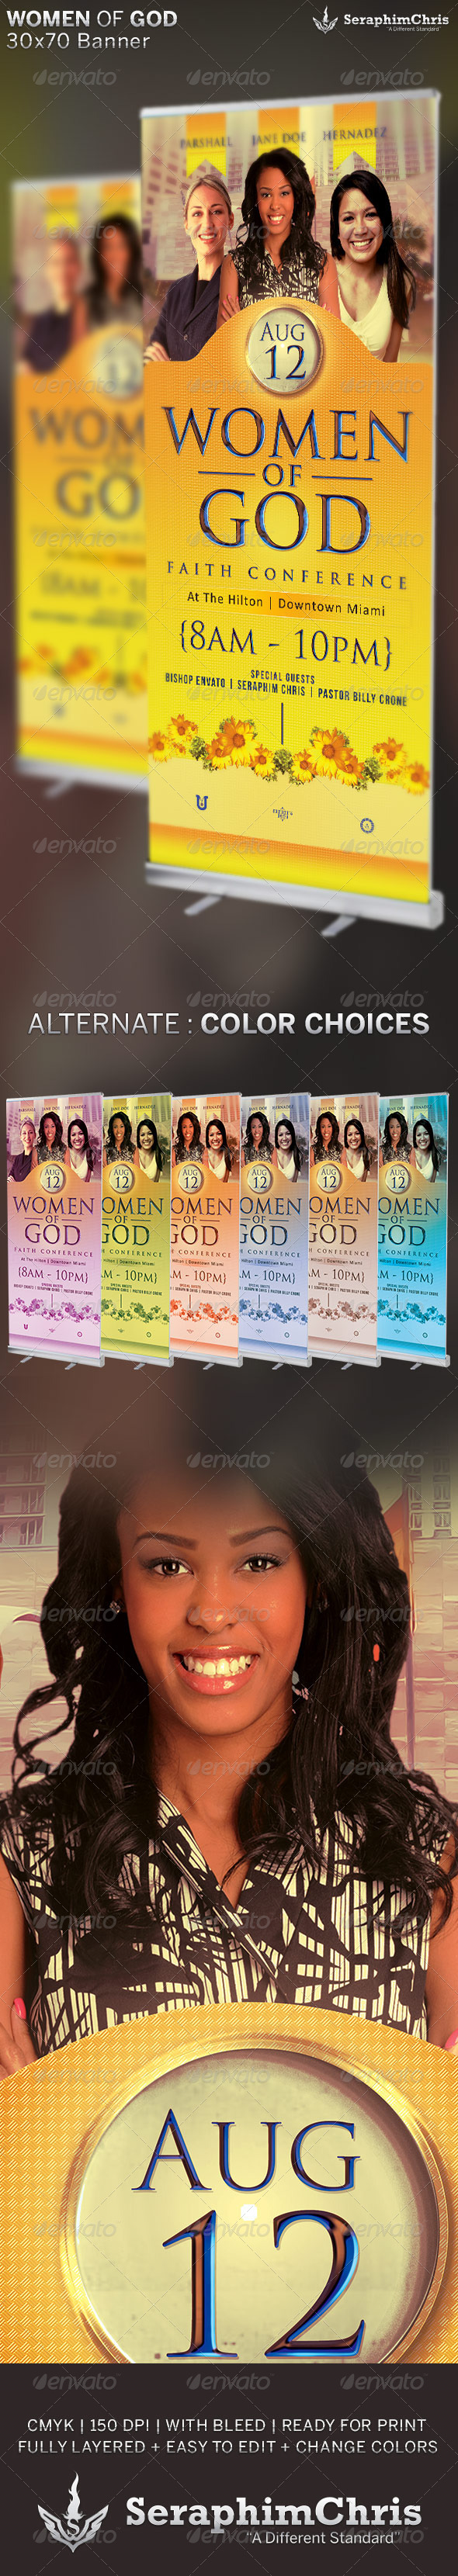 Women of God: Church Banner Template - Signage Print Templates